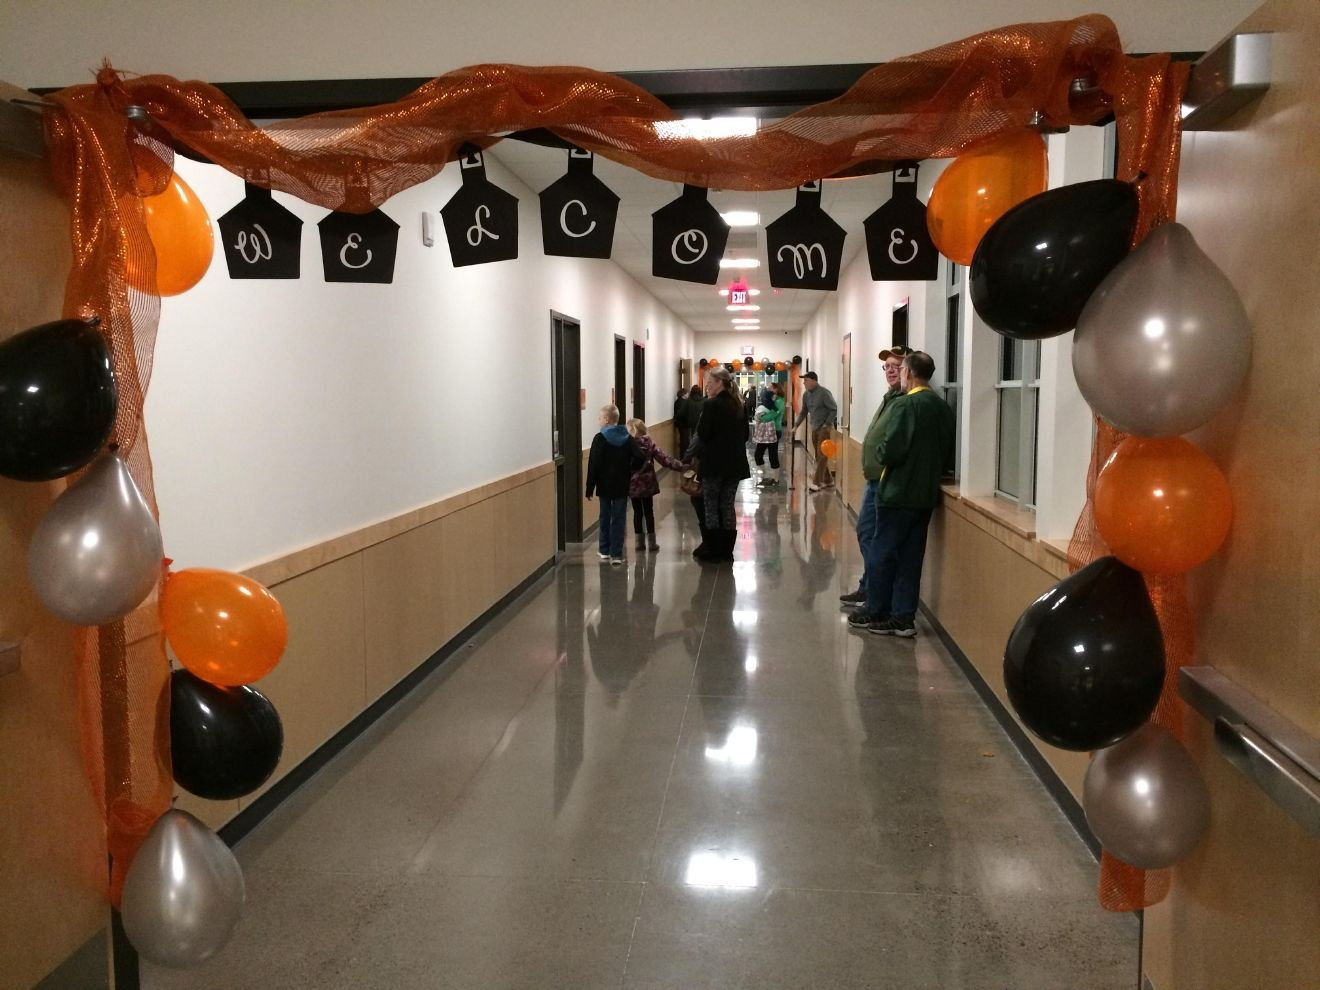 After years of learning in a school with holes in the floor and a broken heating system, students at Marcola Elementary were filled with joy and excitement at Thursday night's grand opening.  The new school cost over $7.5 million. The building was constructed thanks to a bond measure passed by Marcola residents in May 2015. (Emily Higgins/SBG)